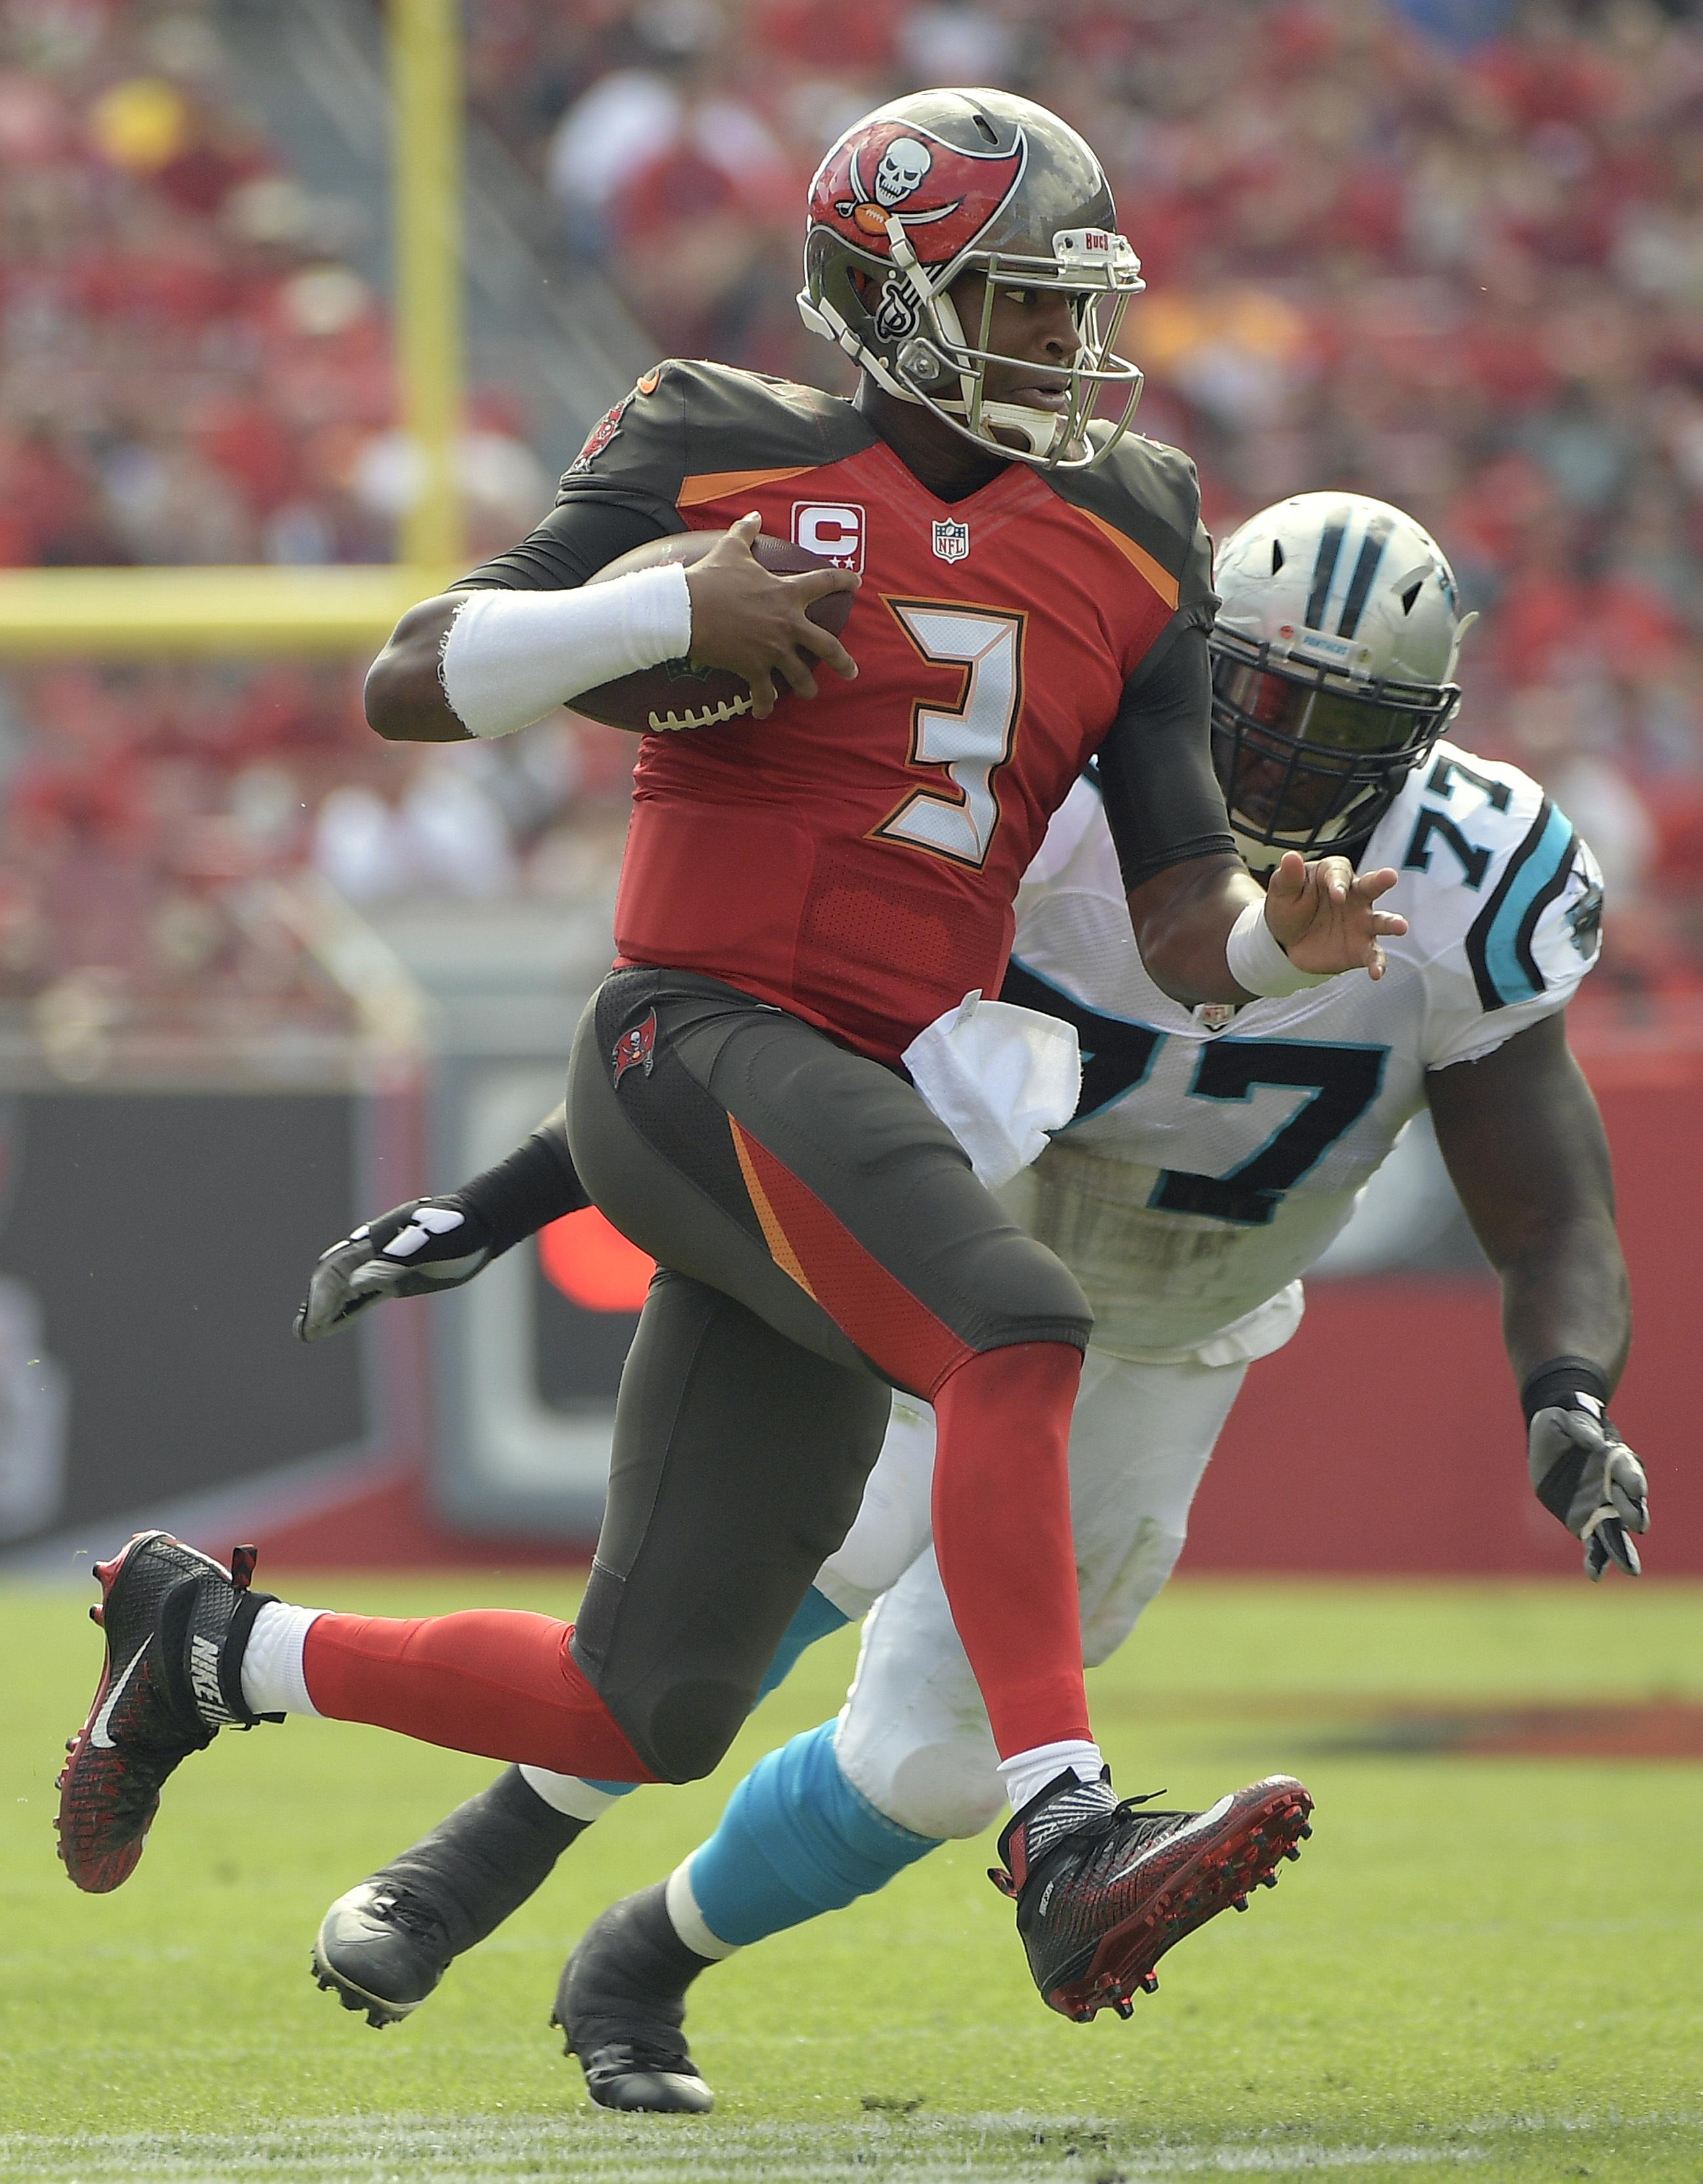 Panthers_buccaneers_football_91194